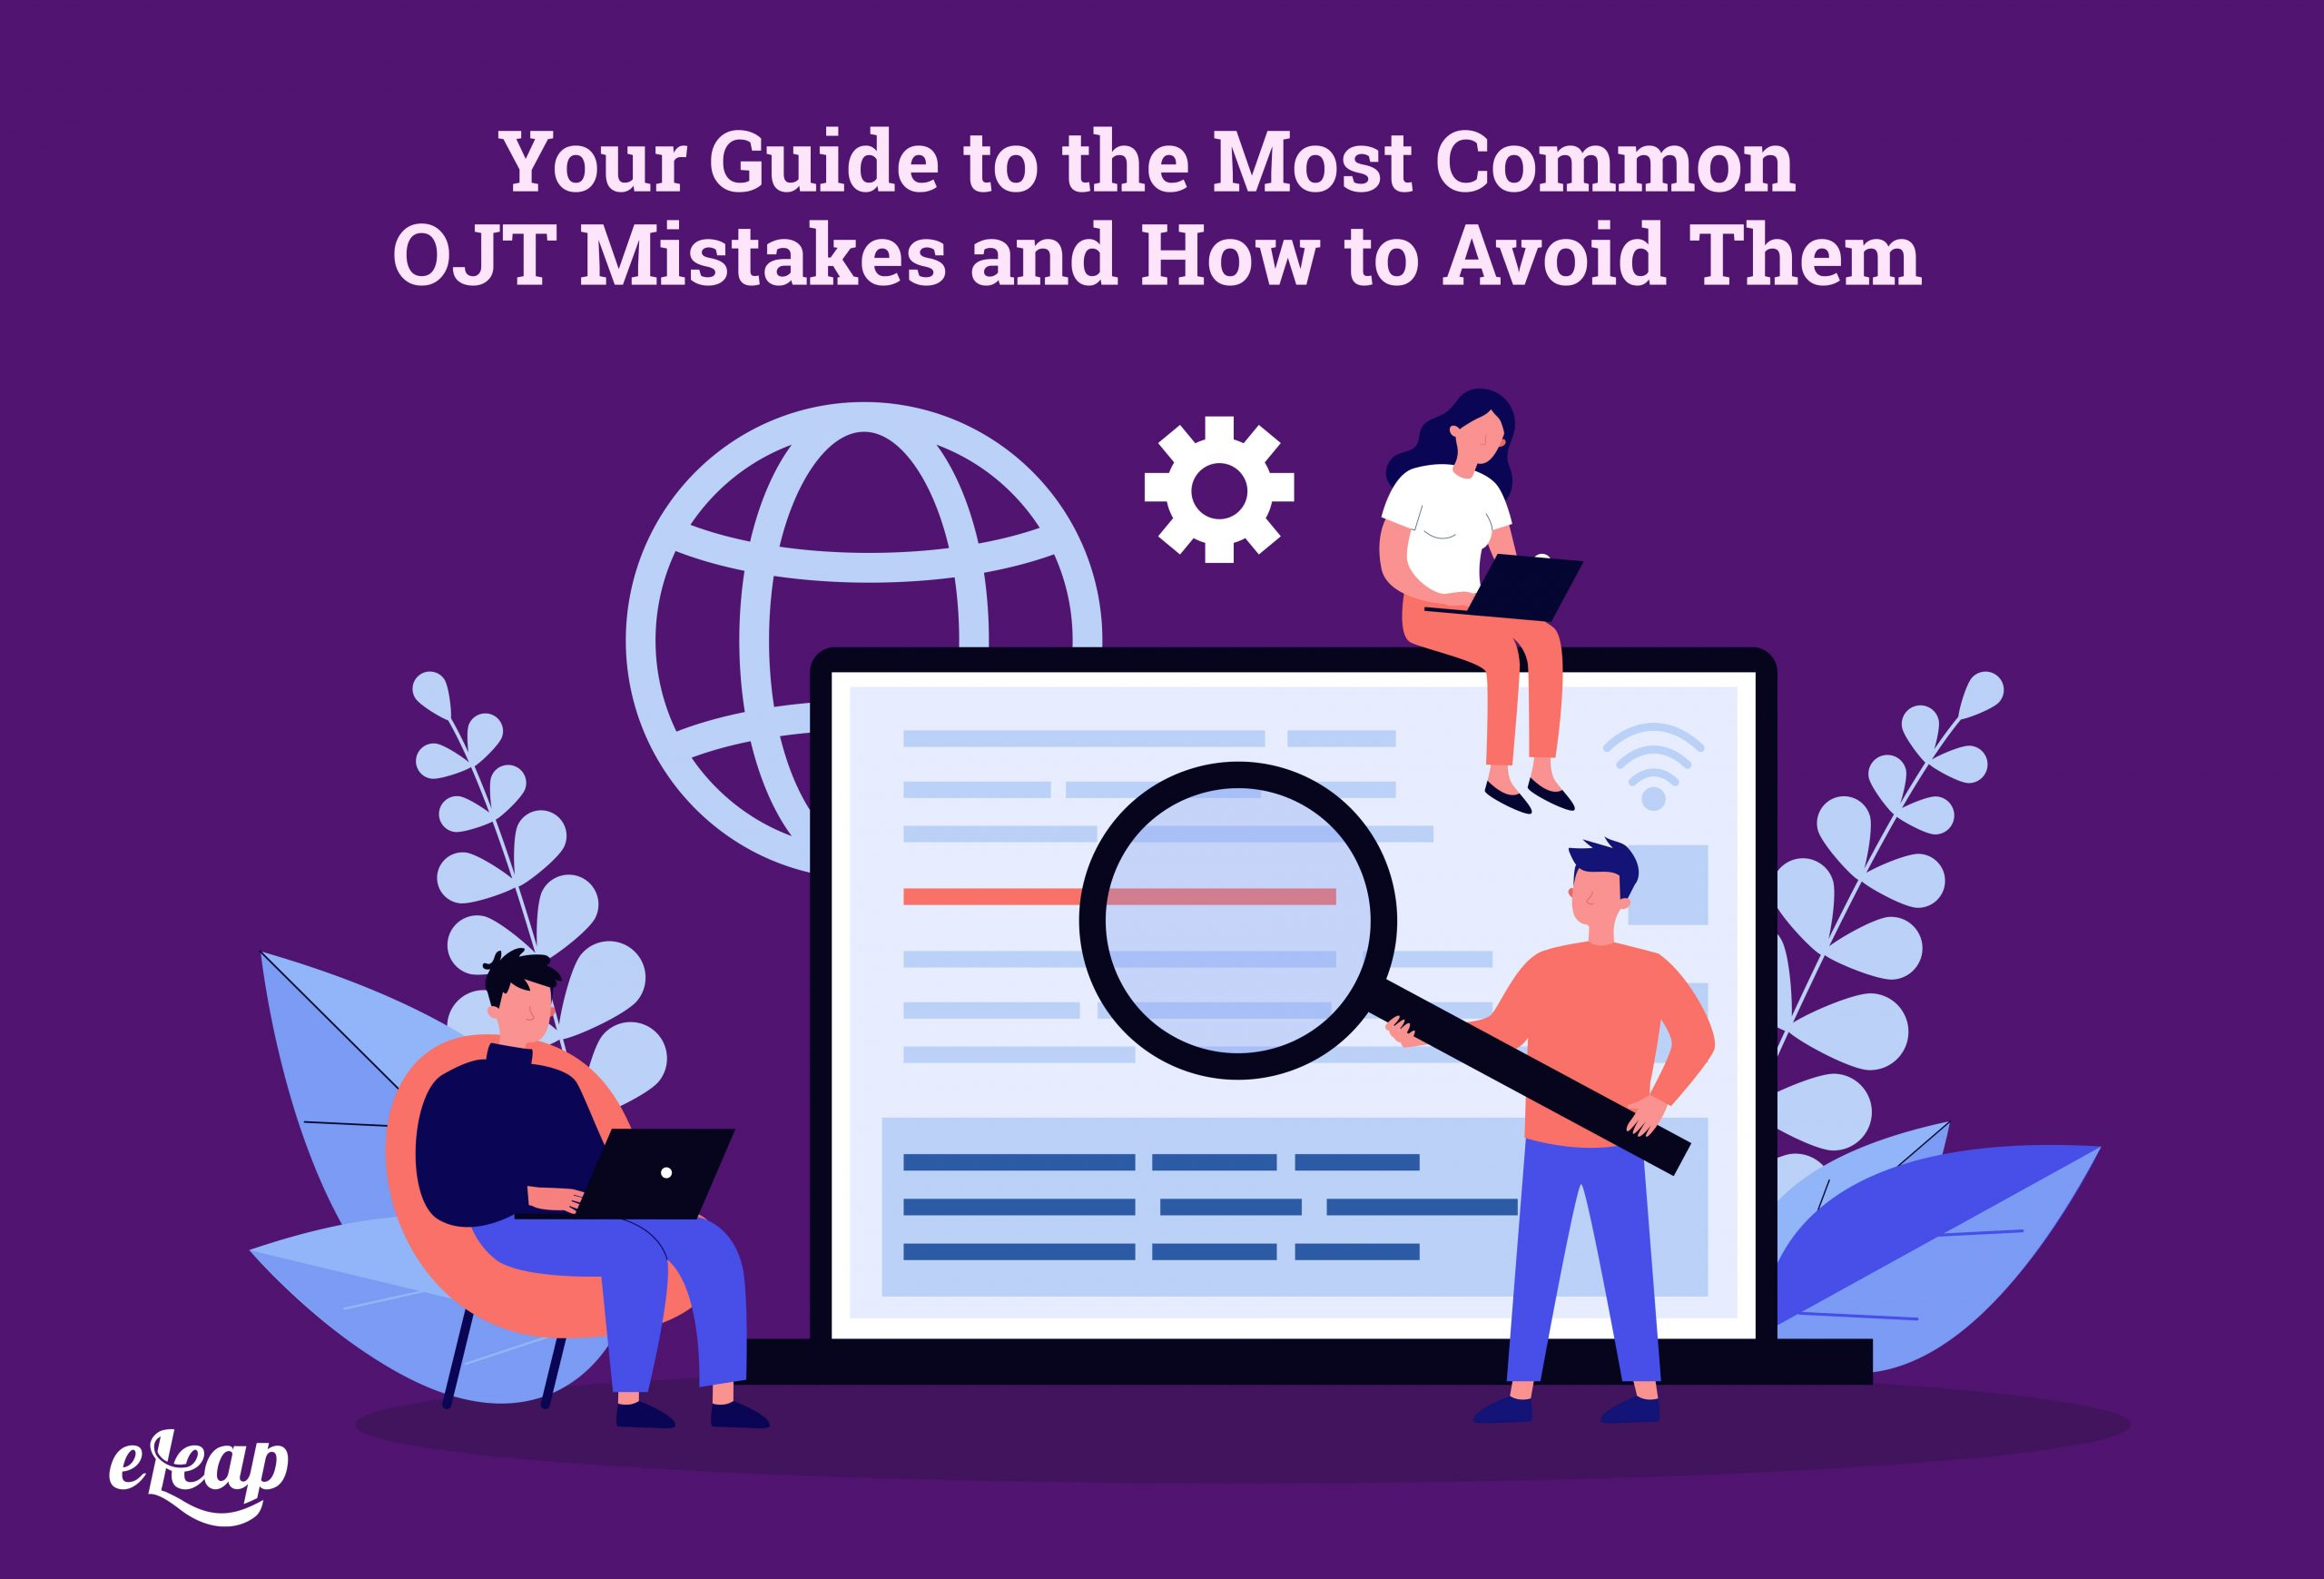 Your Guide to the Most Common OJT Mistakes and How to Avoid Them